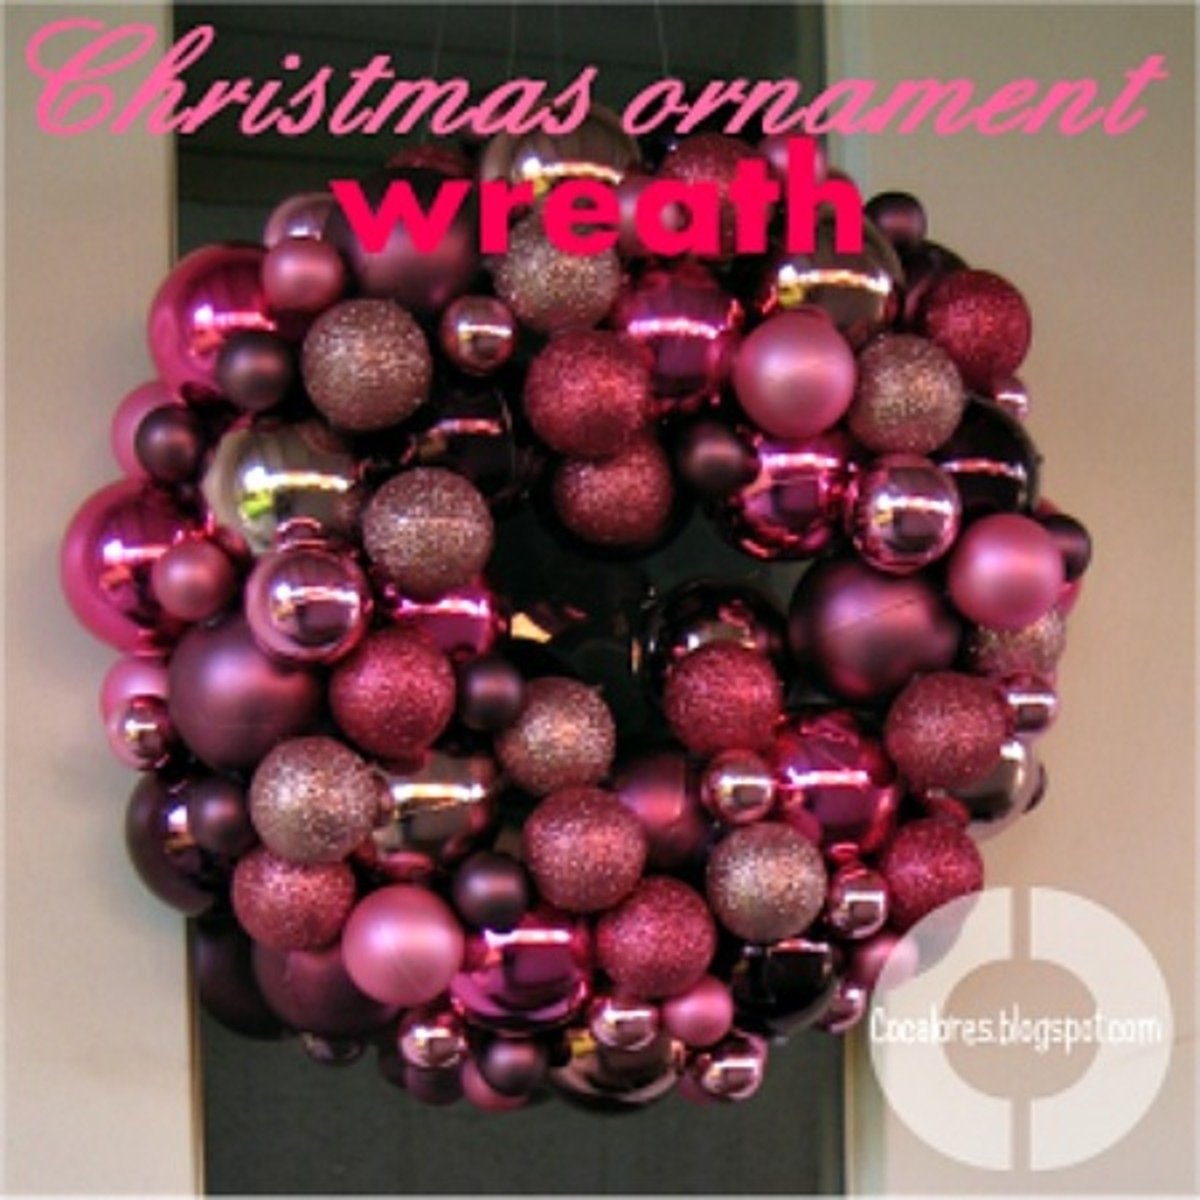 Image #4 - Hot Pink Christmas Ornament Wreath